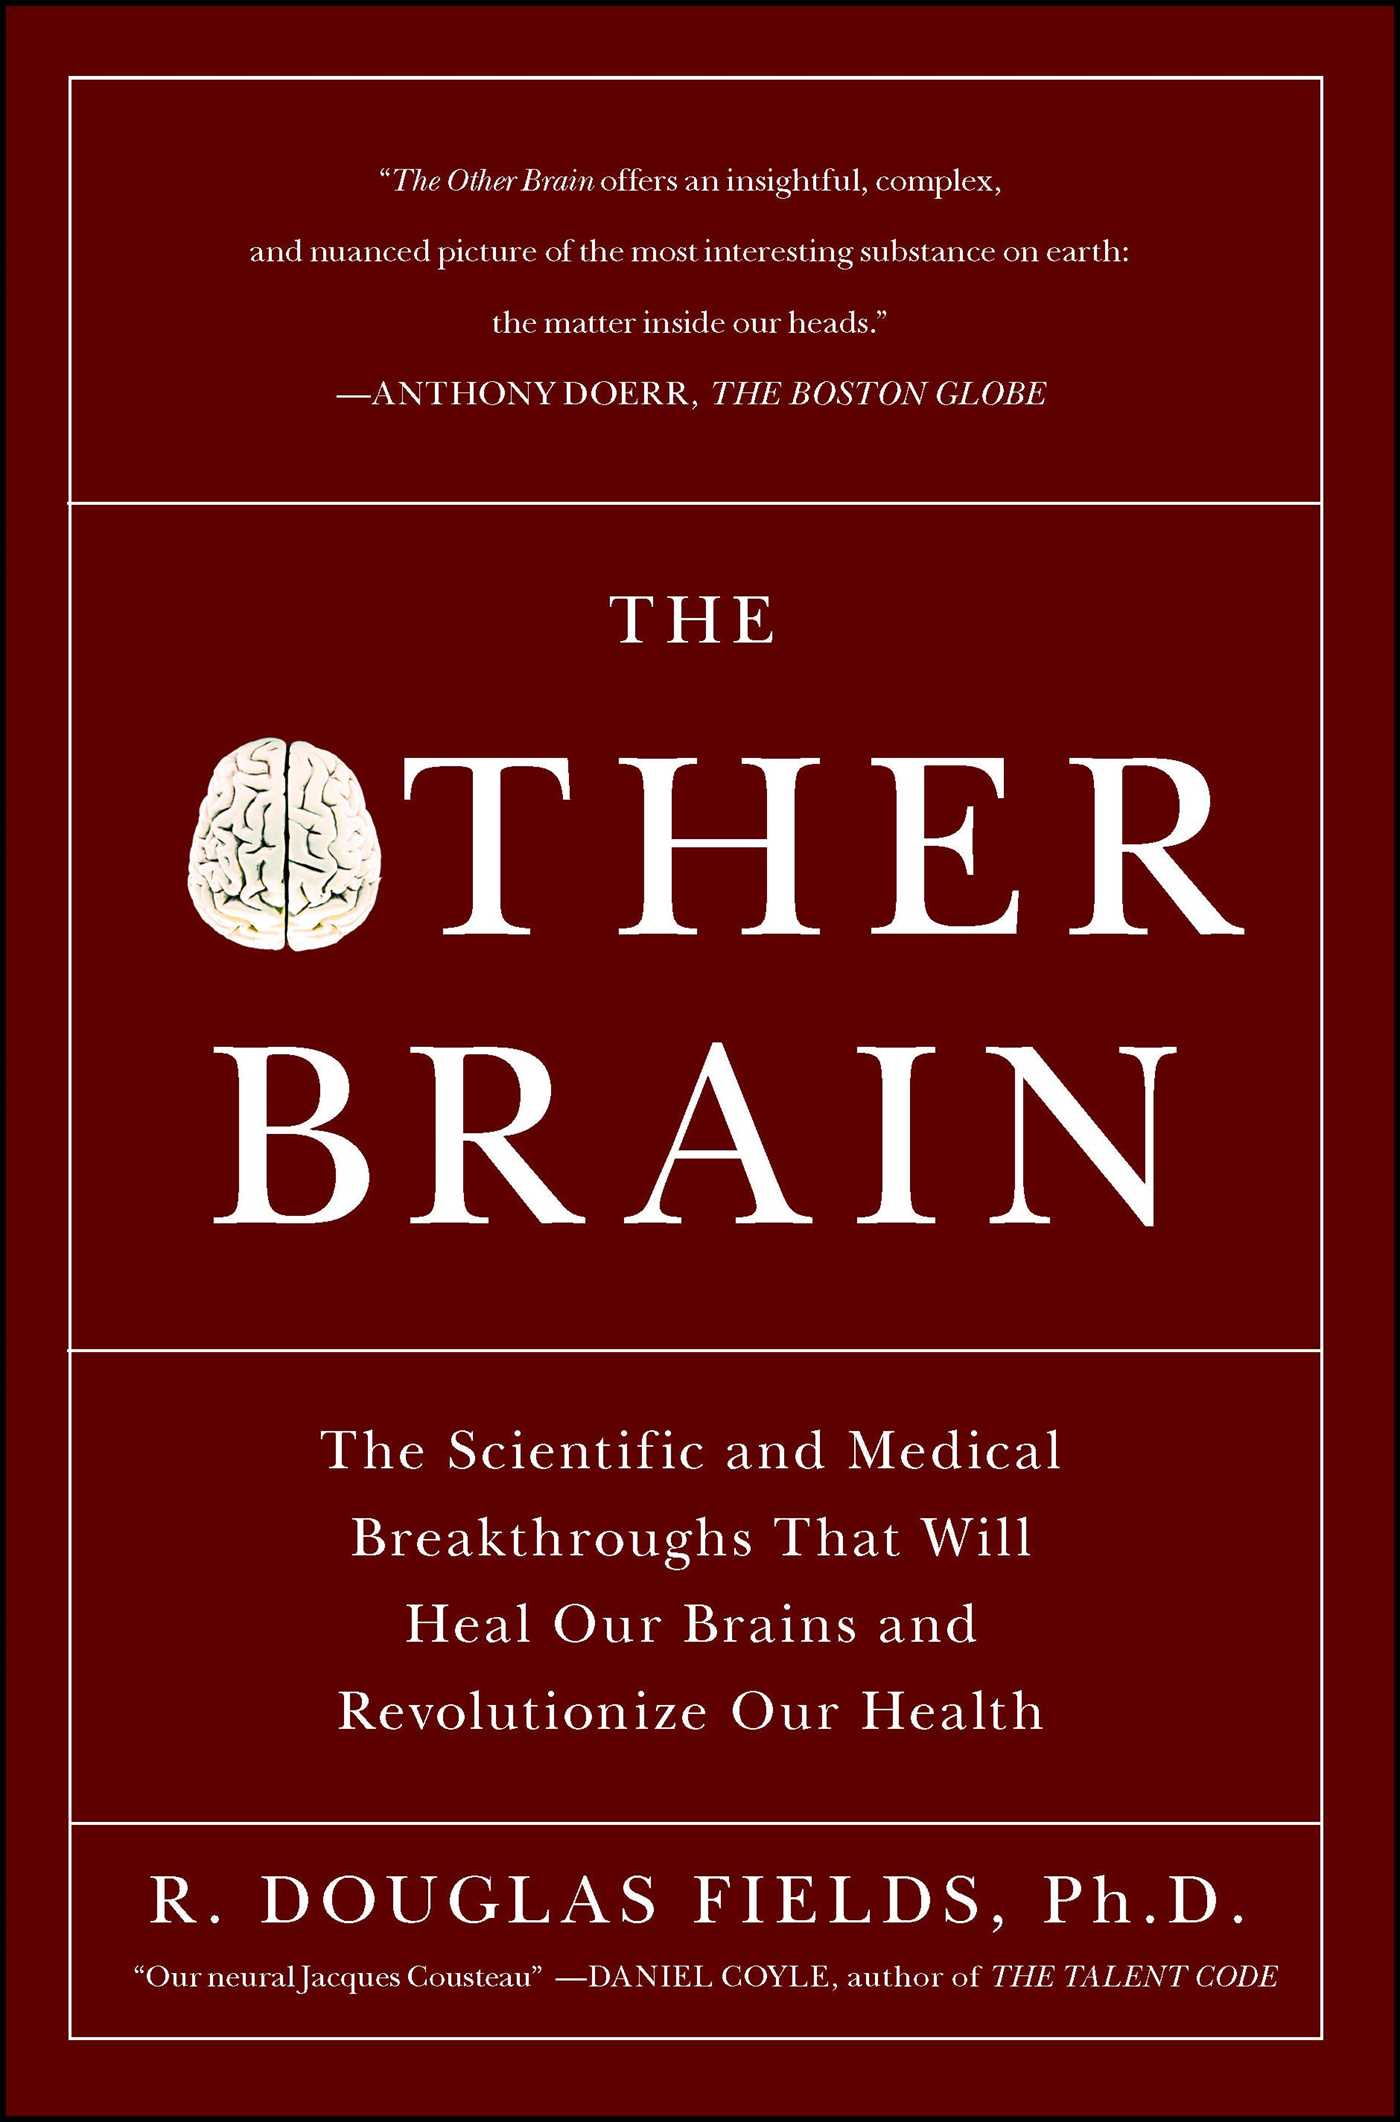 The other brain 9780743291422 hr